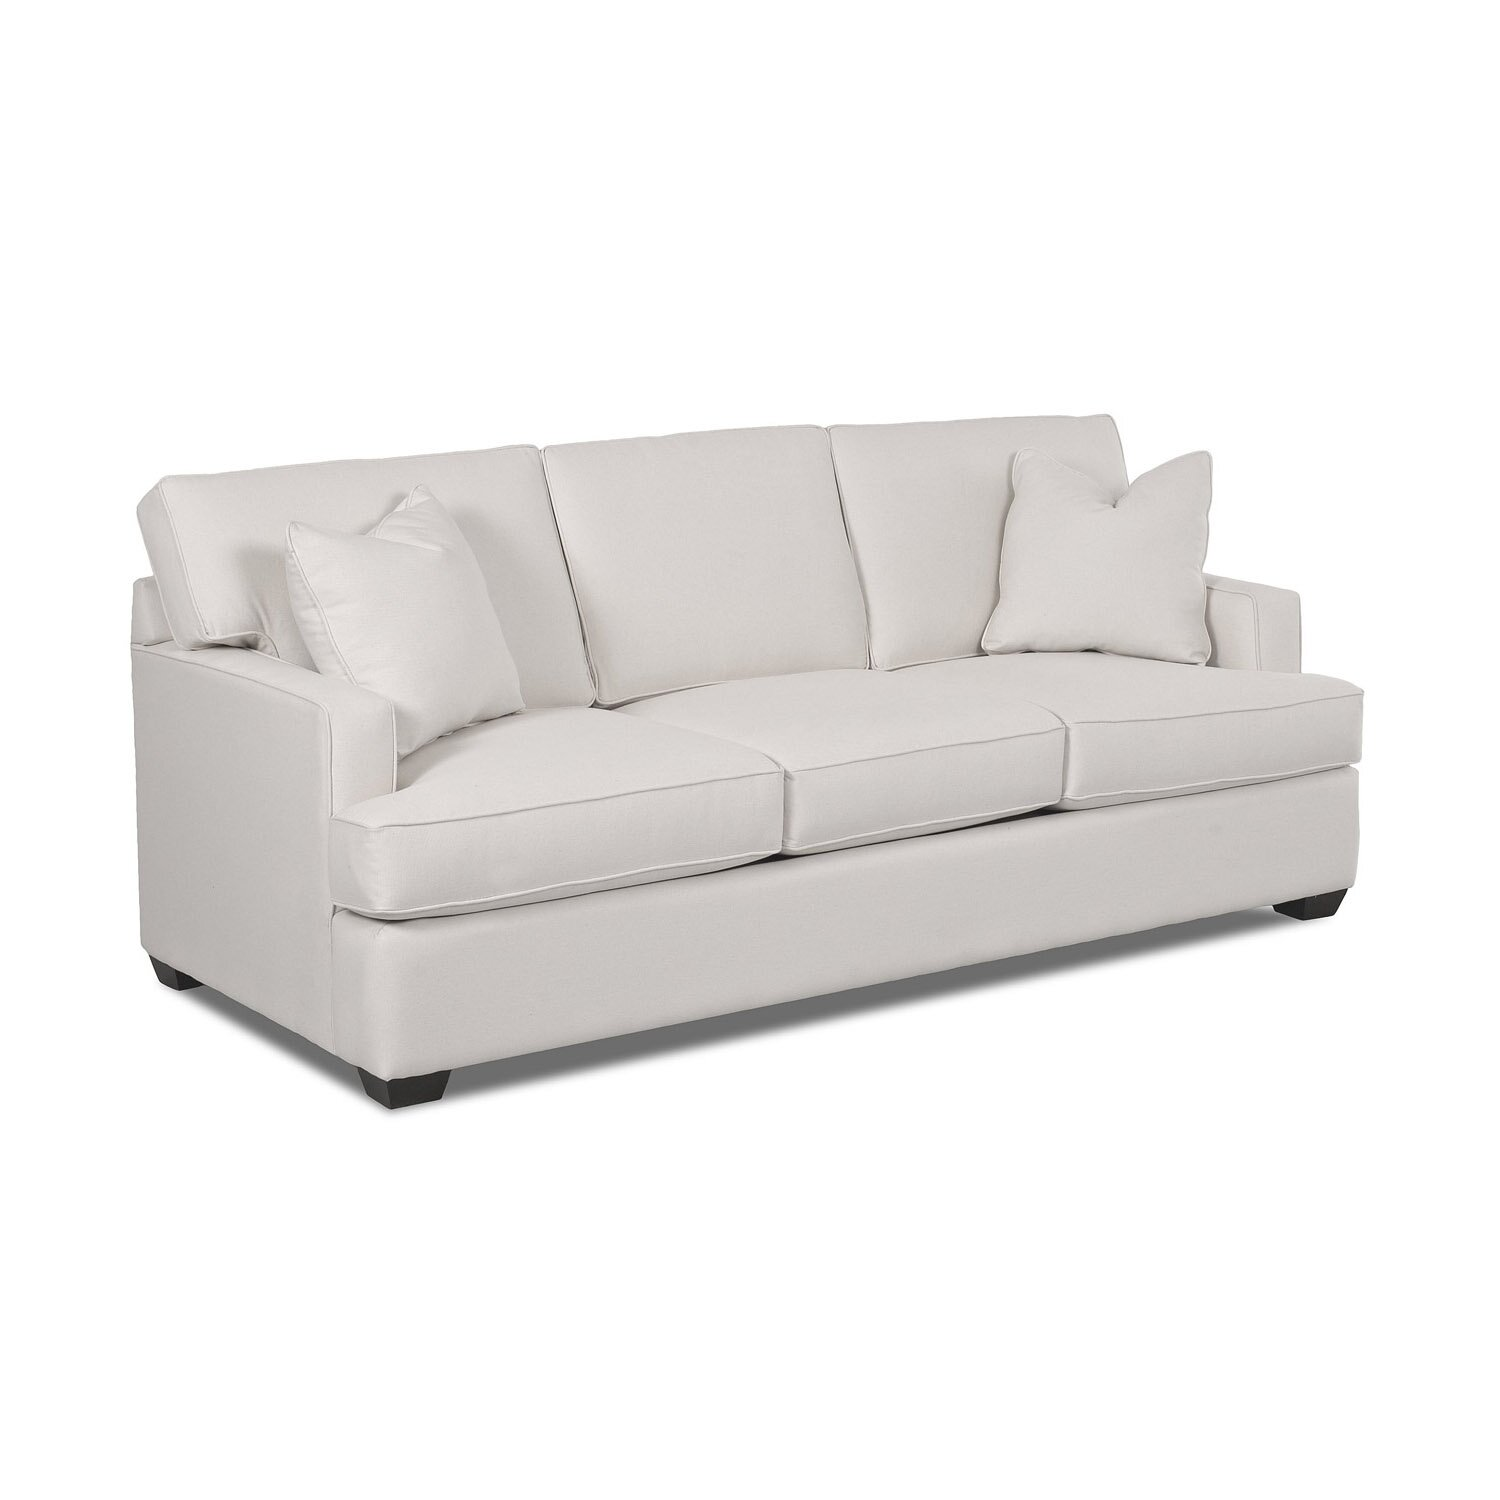 Wayfair custom upholstery avery sleeper sofa reviews for Wayfair furniture sectional sofa